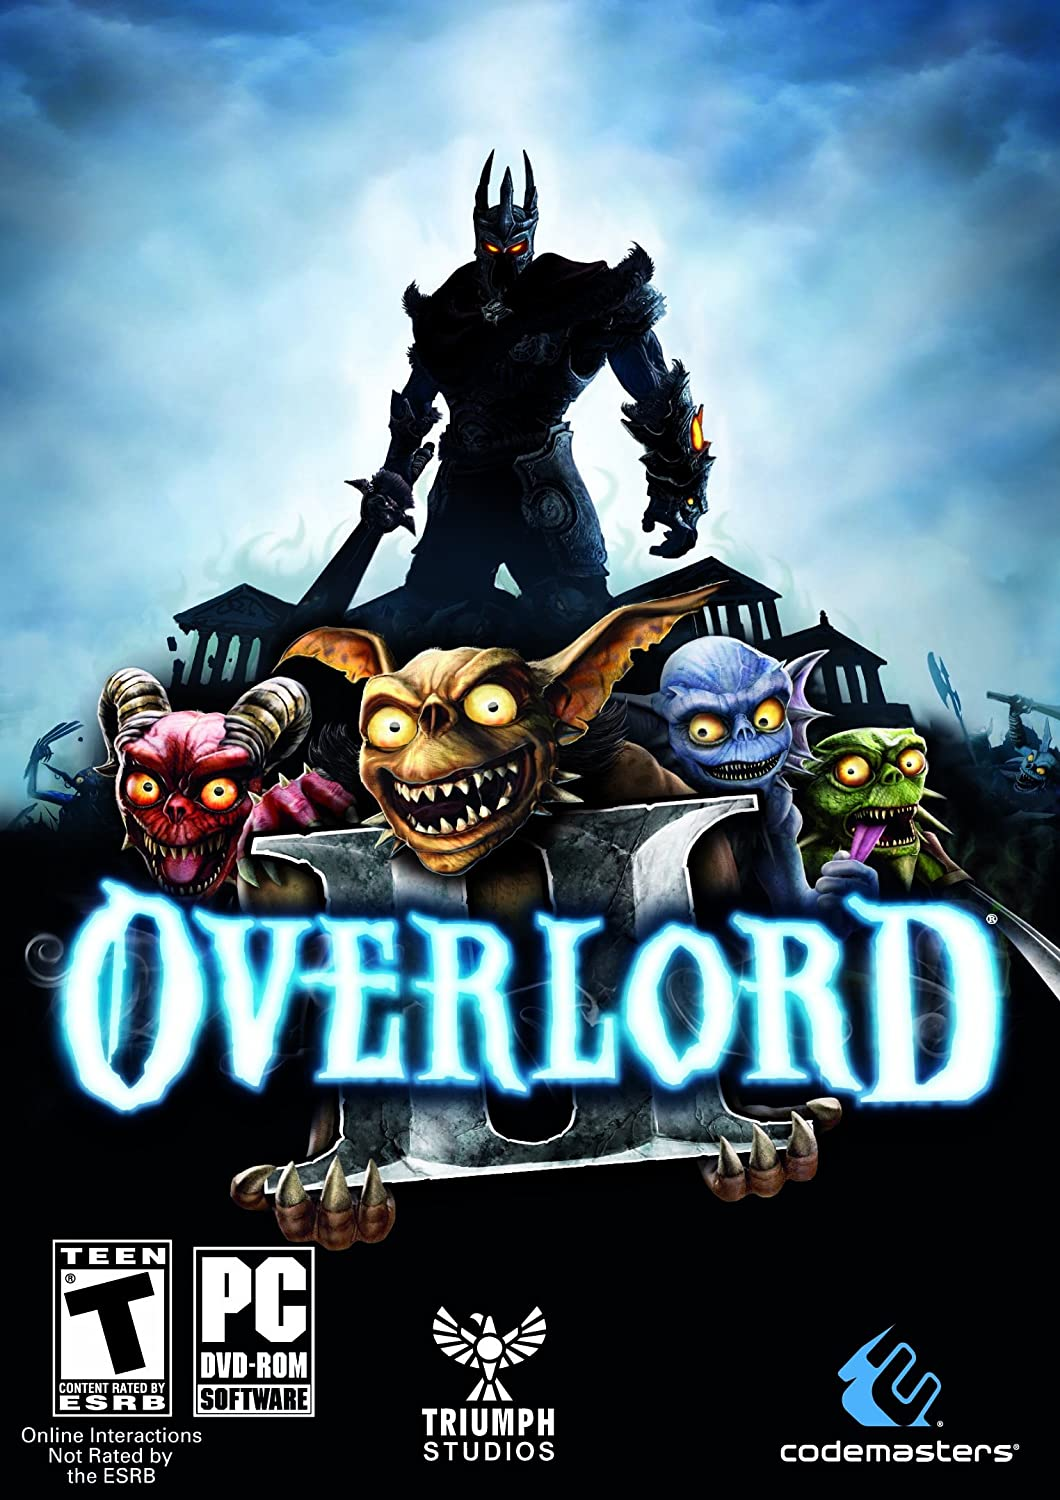 Amazon.com: Overlord 2 - PC: Video Games